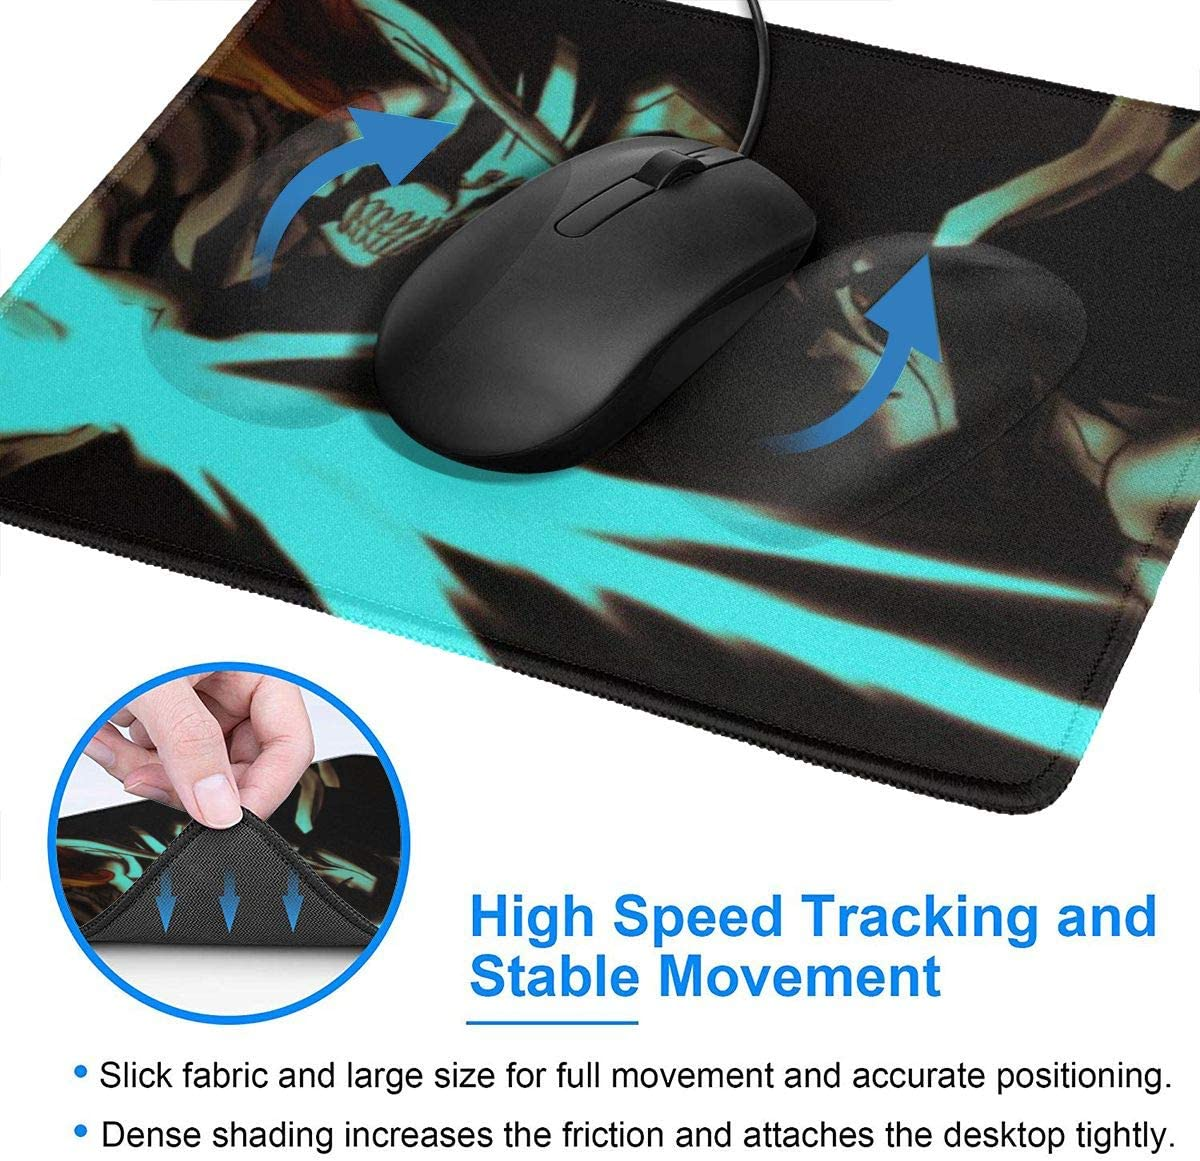 Office Ideal for Desk Cover Laptop and PC 7 X 8.6 Inch Large Mouse Pats Stitched Edges Anime Bleach Gaming Mouse Mat Pad Unique Custom Mousepad Computer Keyboard